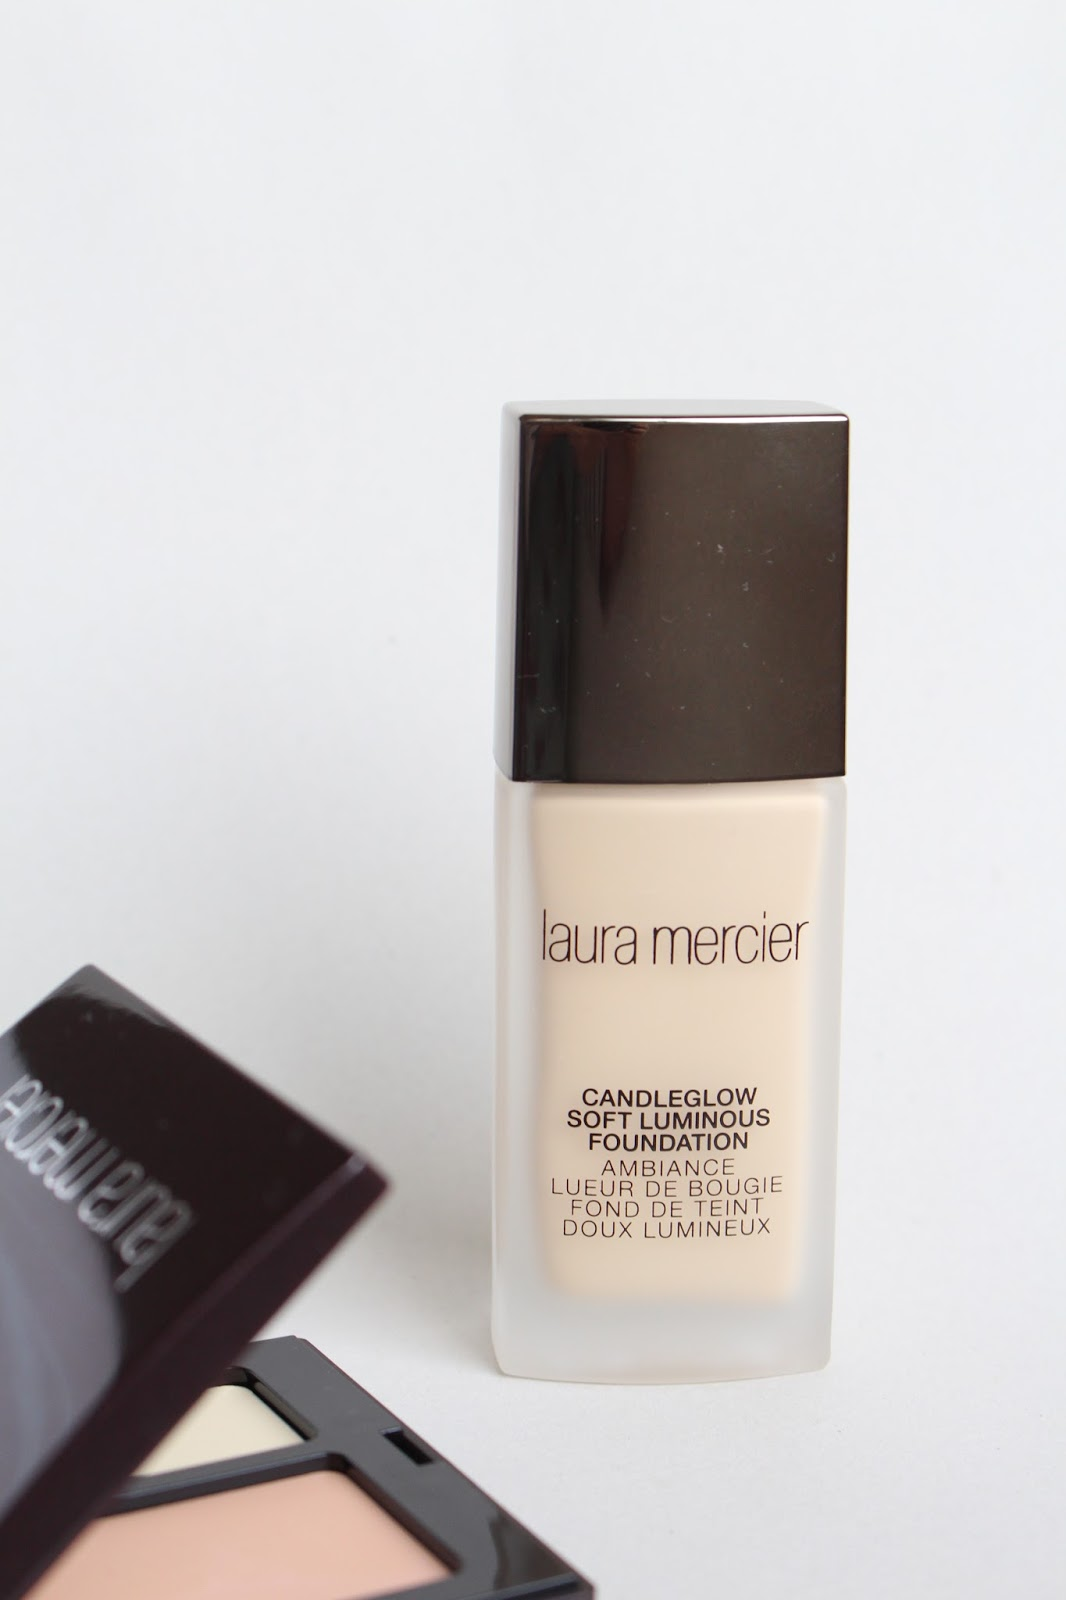 Laura Geller Candleglow Luminous Soft Foundation